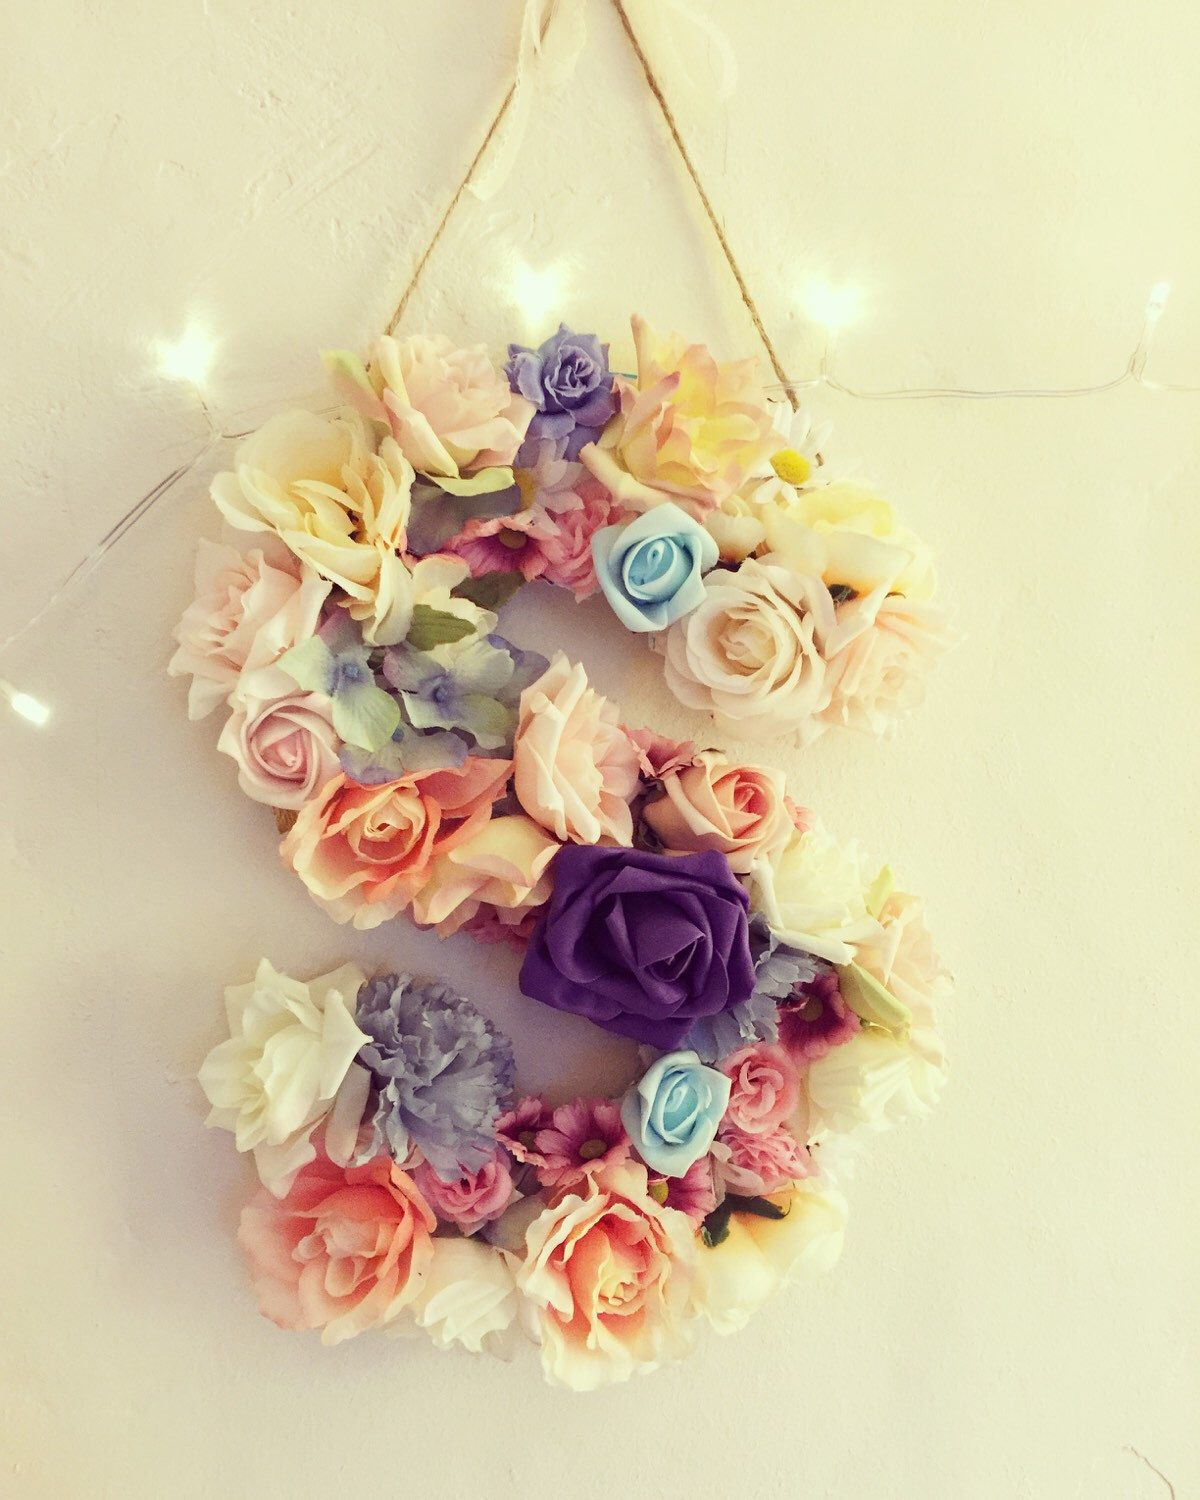 Flowers and Twine | Decorative Item | Hanging Flower Letters ...